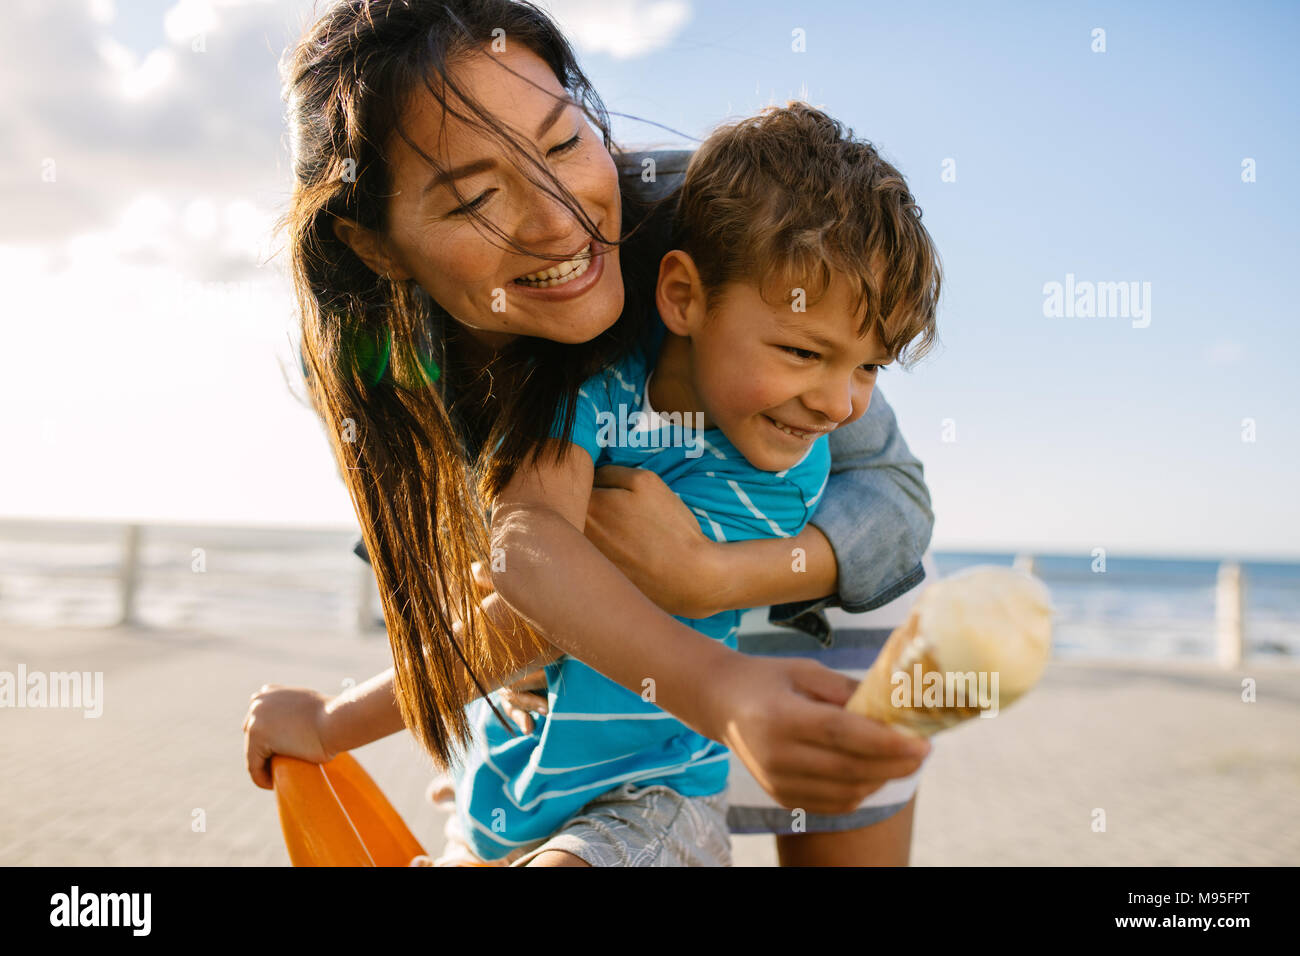 Boy eating an ice cream near seafront with his mother. Little boy holding an ice cream cone while his mother playfully tries to eat it from behind. - Stock Image